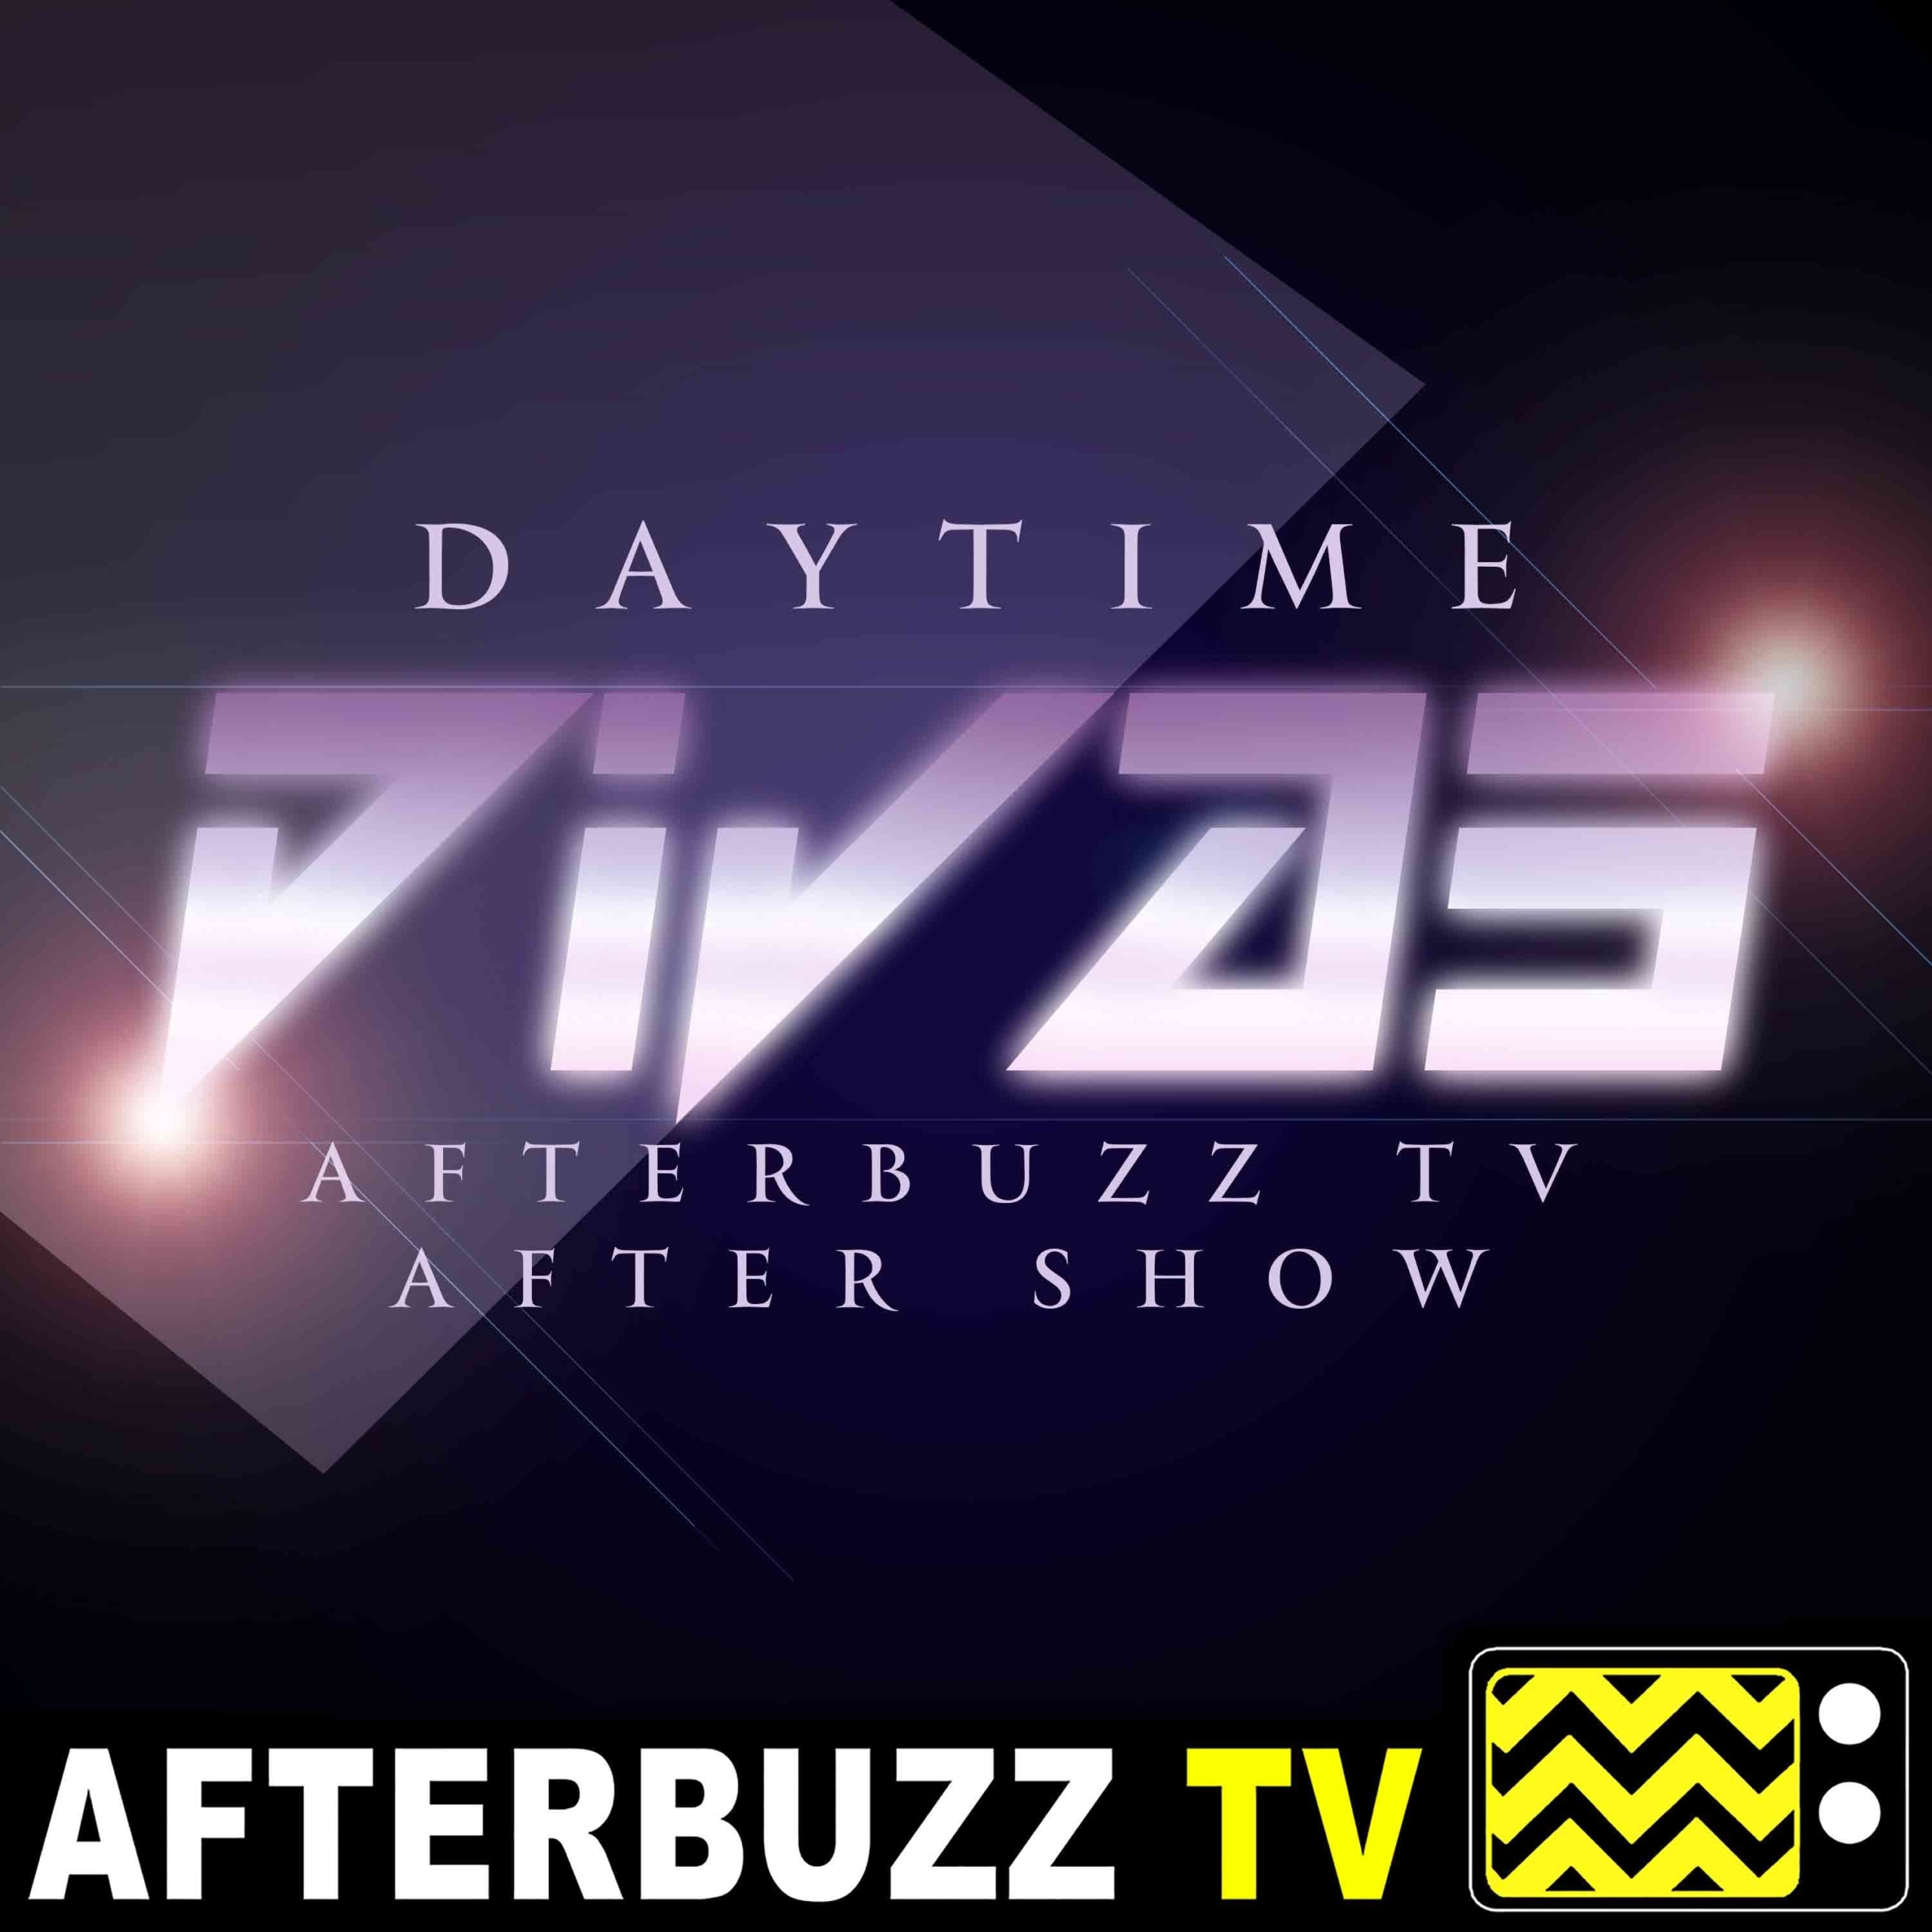 Daytime Divas S:1 | Special with Fiona Gubelmann & Camille Guaty | AfterBuzz TV AfterShow